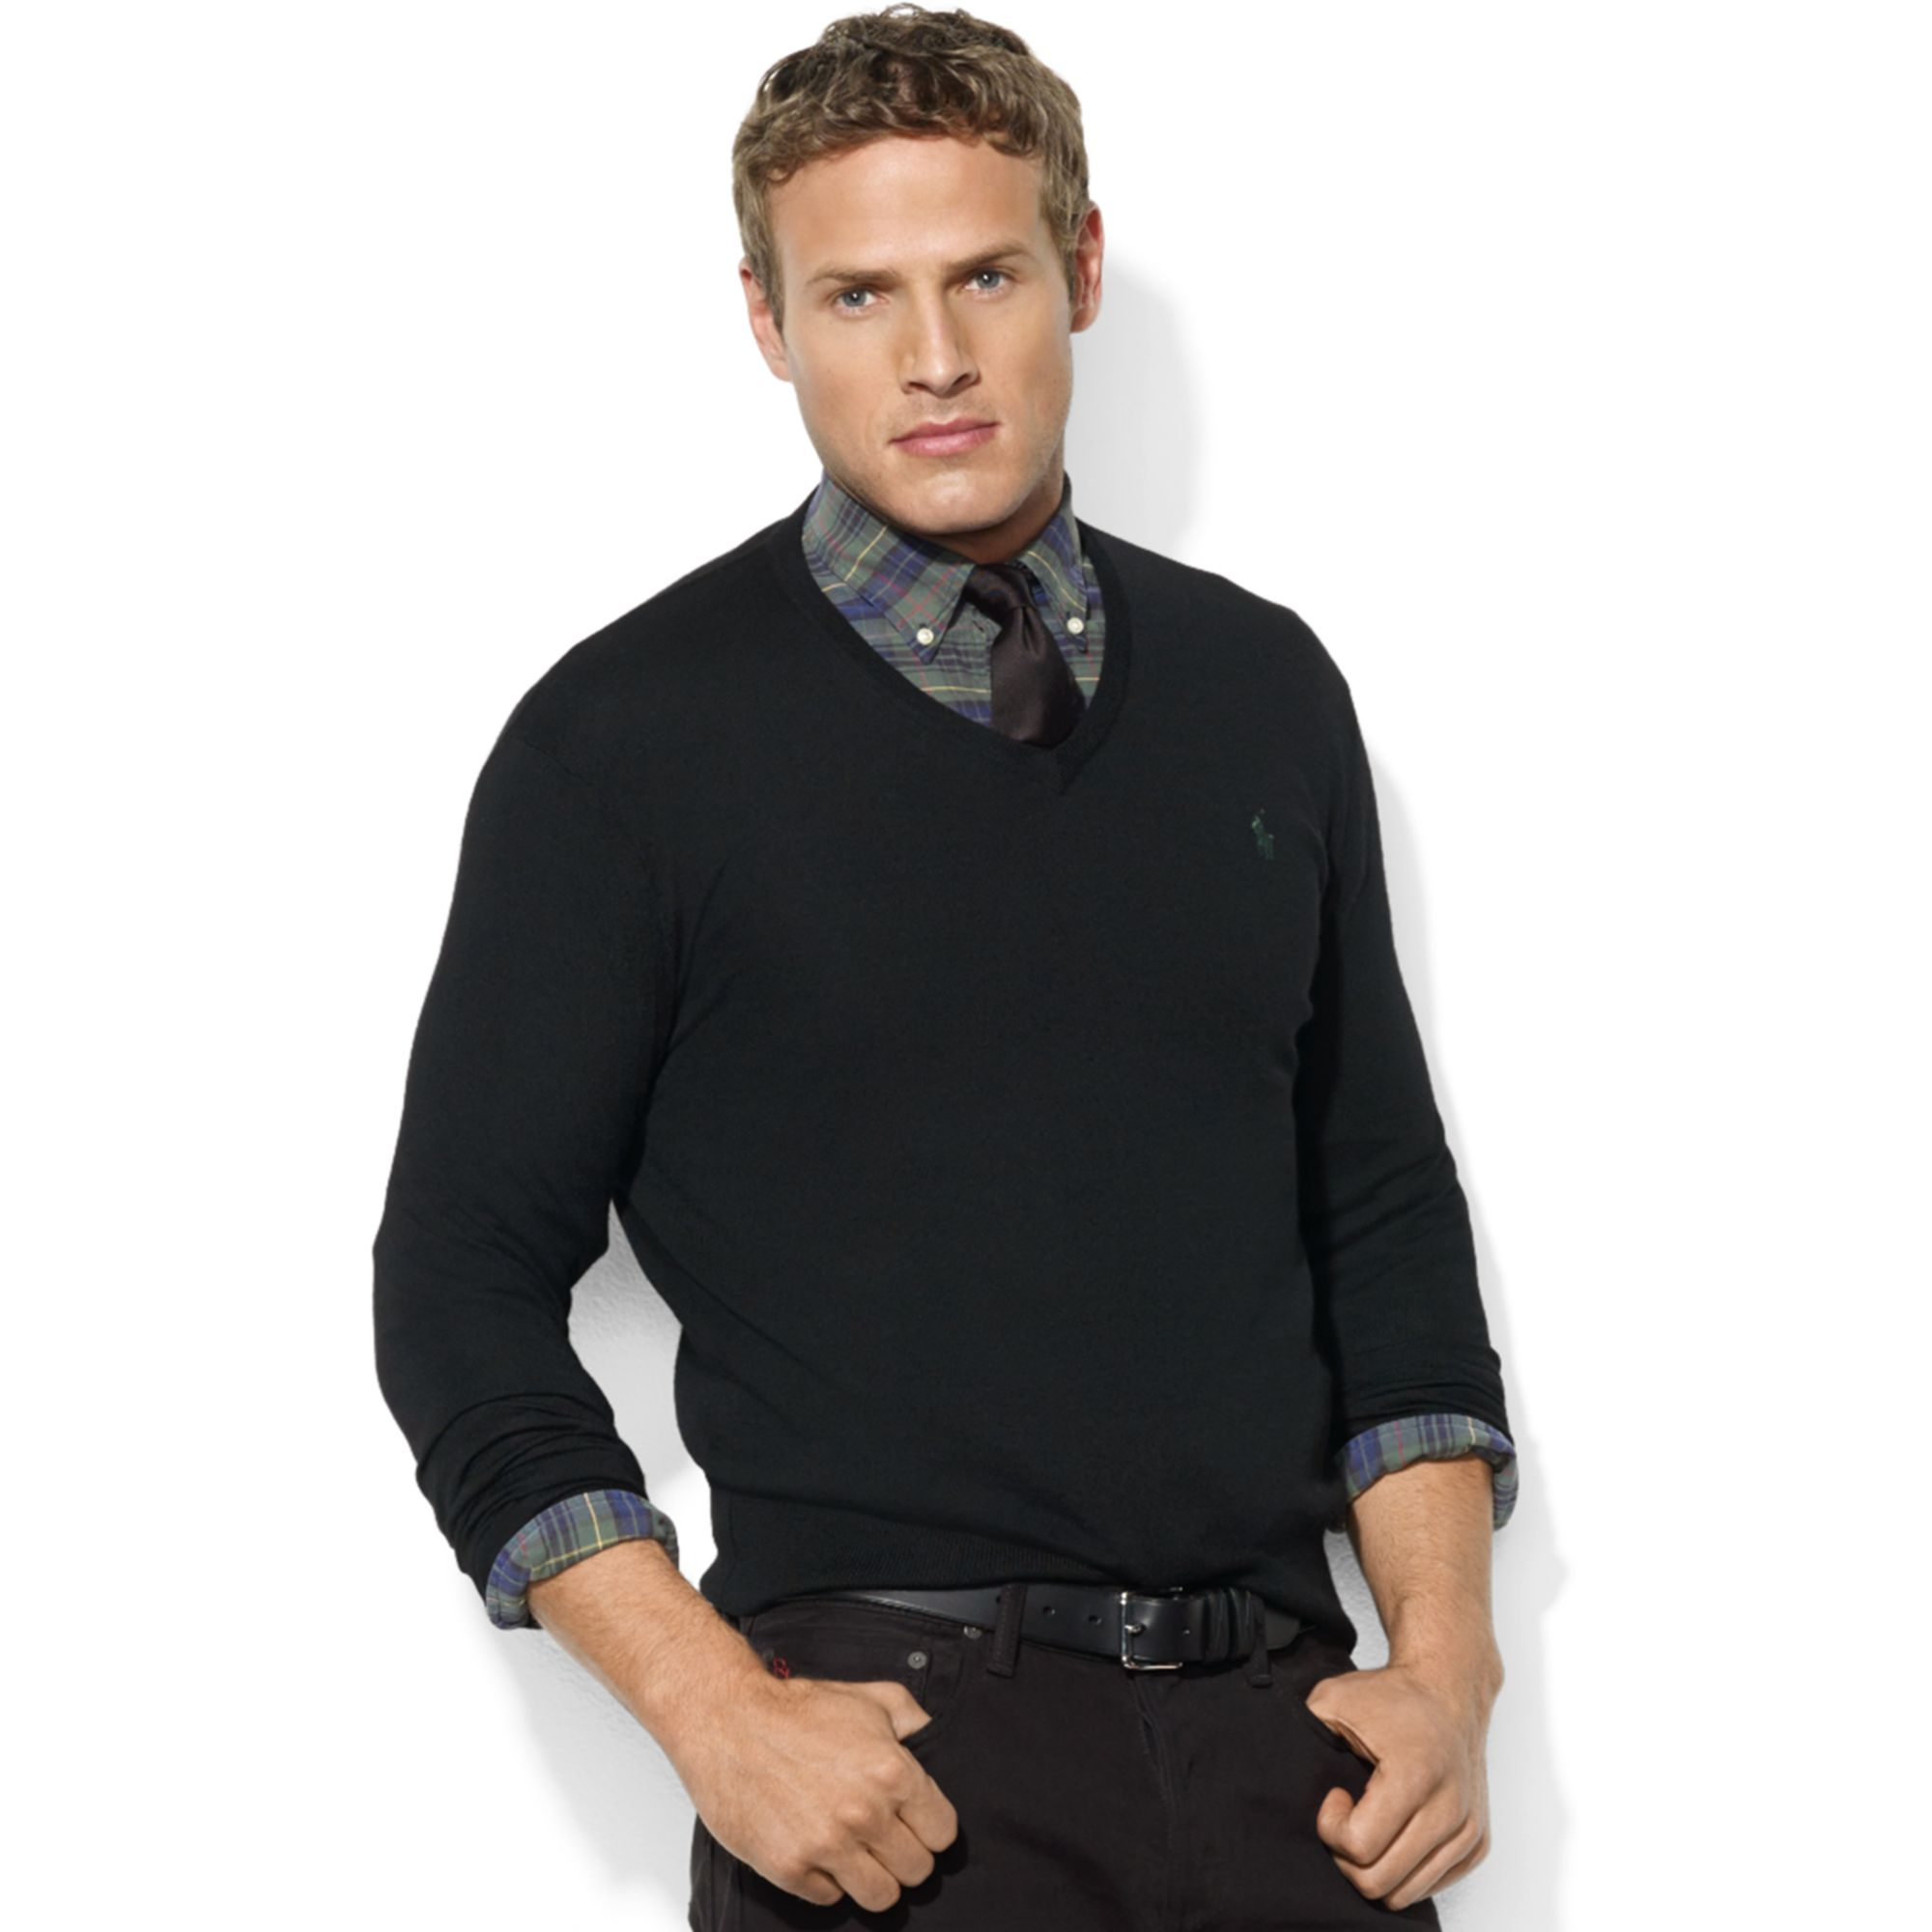 Enjoy free shipping and easy returns every day at Kohl's. Find great deals on Mens Black V-Neck Sweaters at Kohl's today!